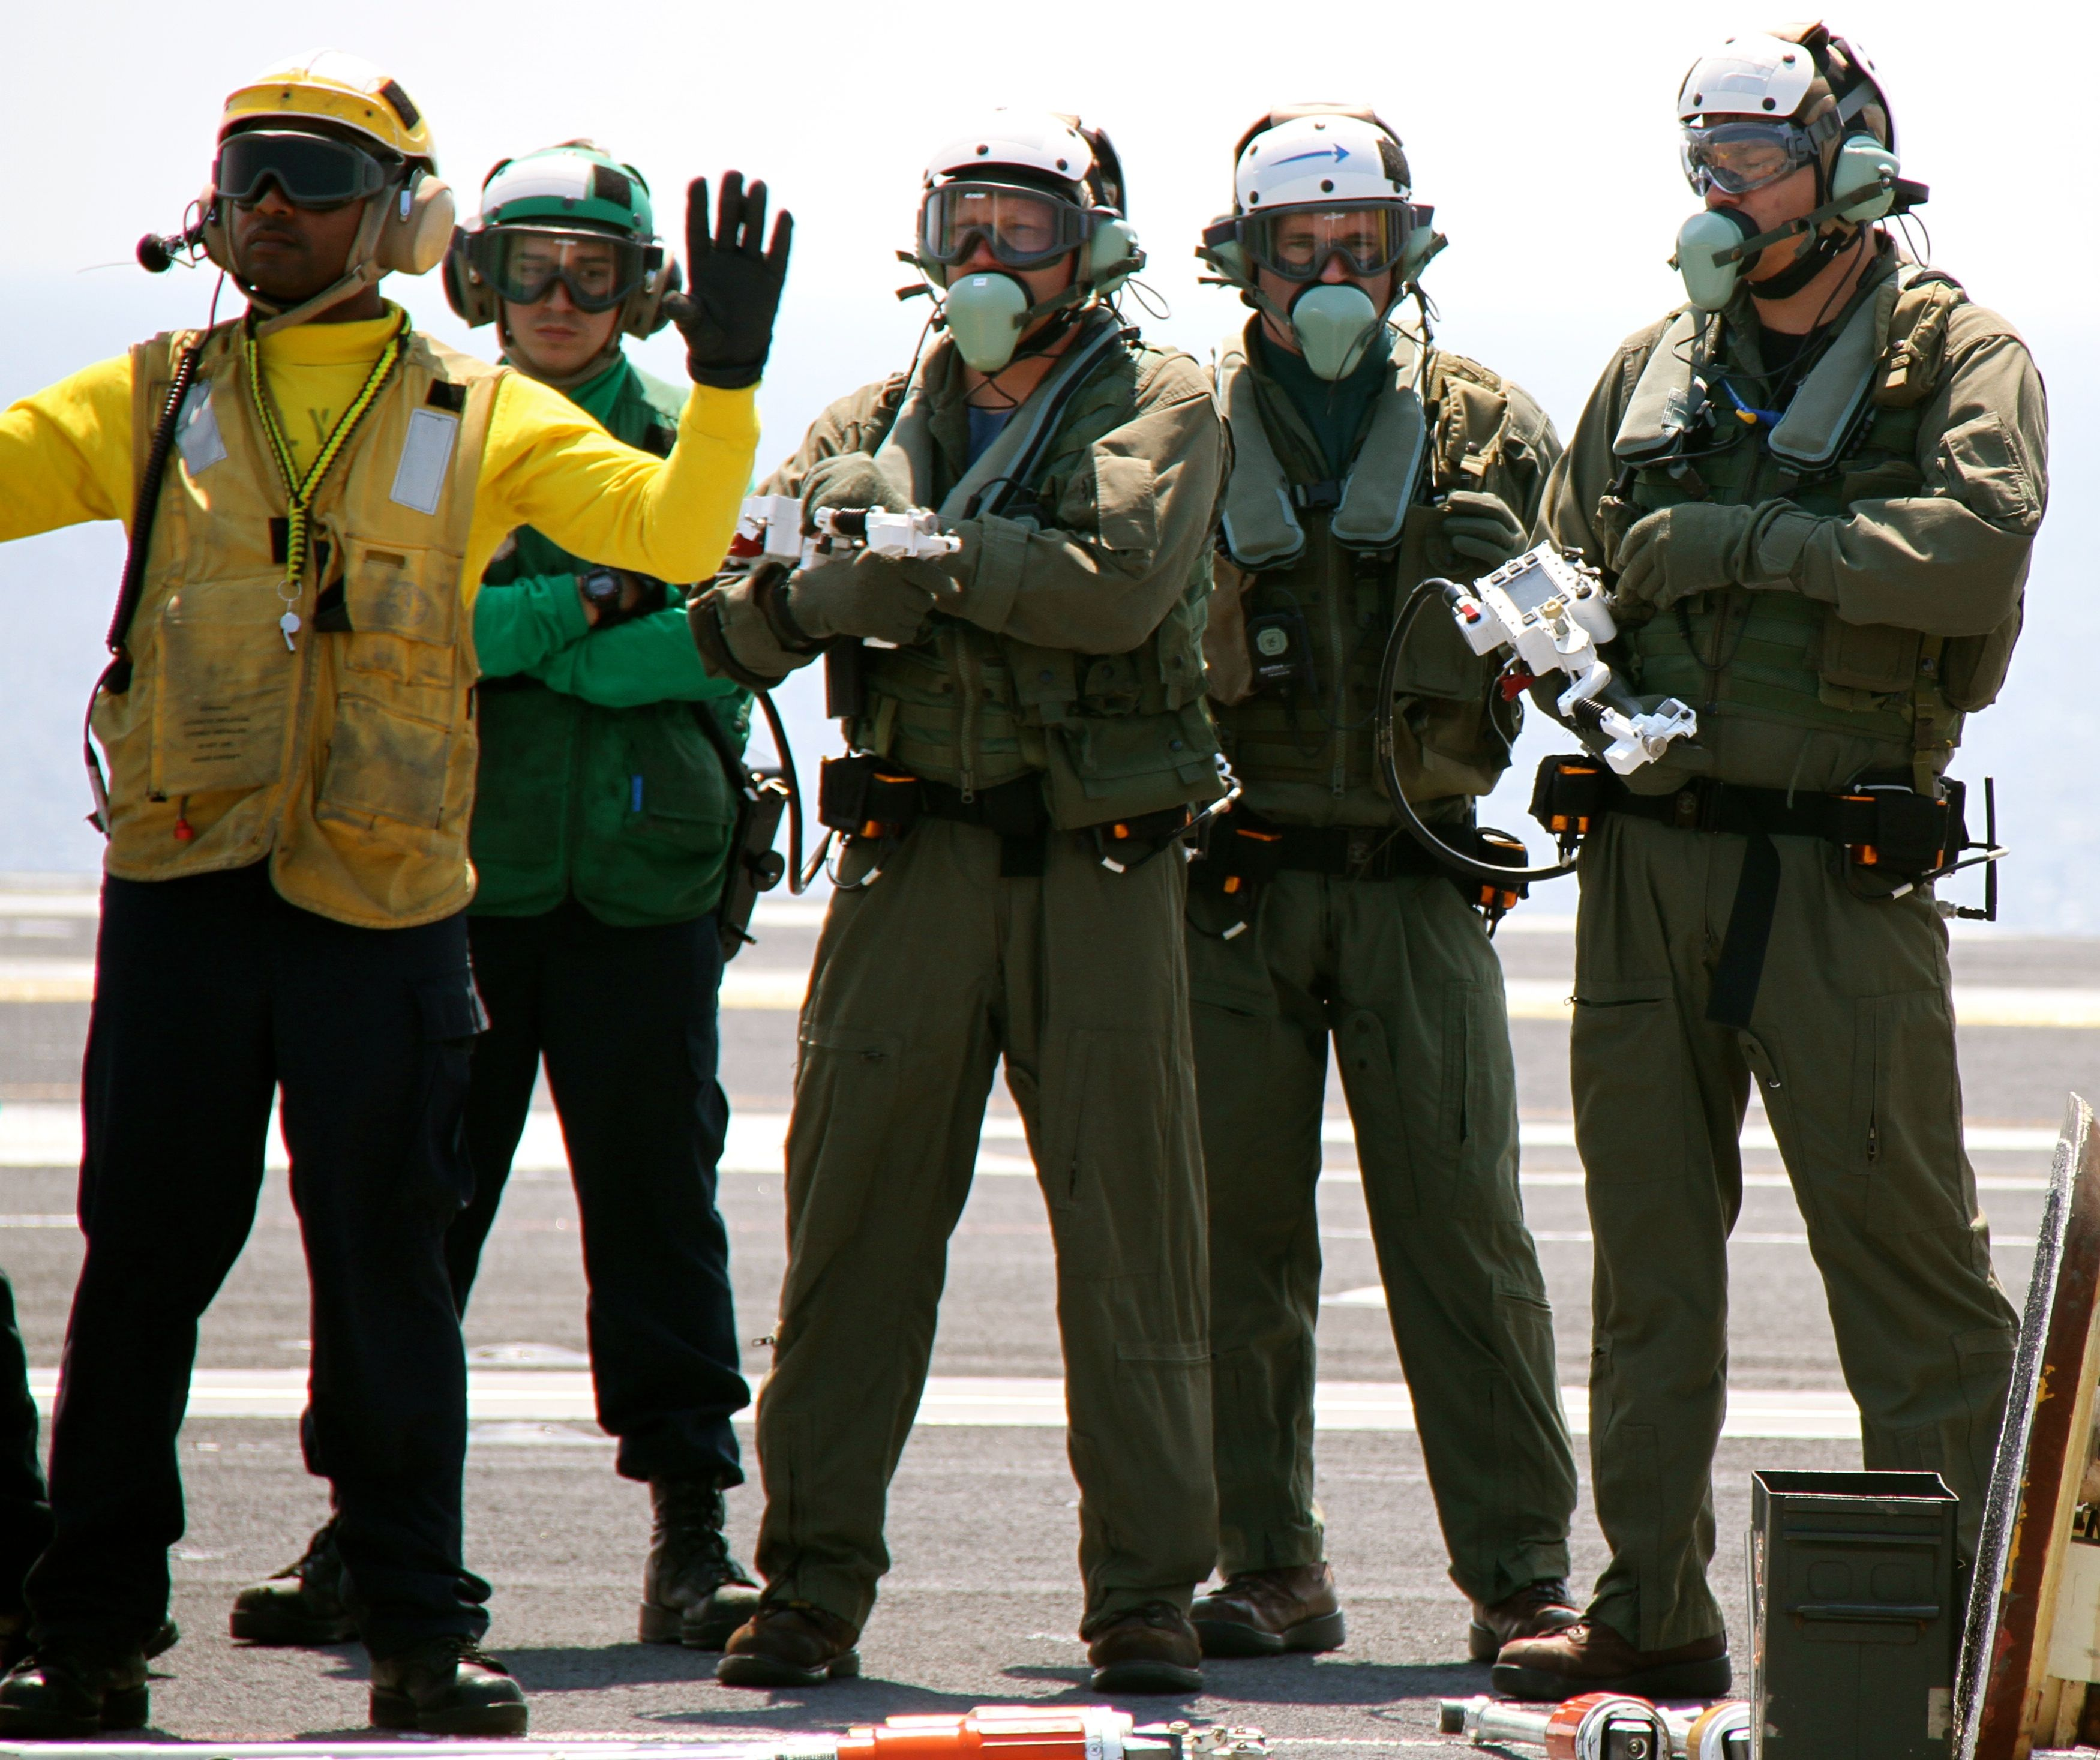 Contractors with Northrop Grumman responsible for operating the X-47B on the deck of USS Theodore Roosevelt (CVN-71) on Aug. 17, 2014. US Naval Institute Photo